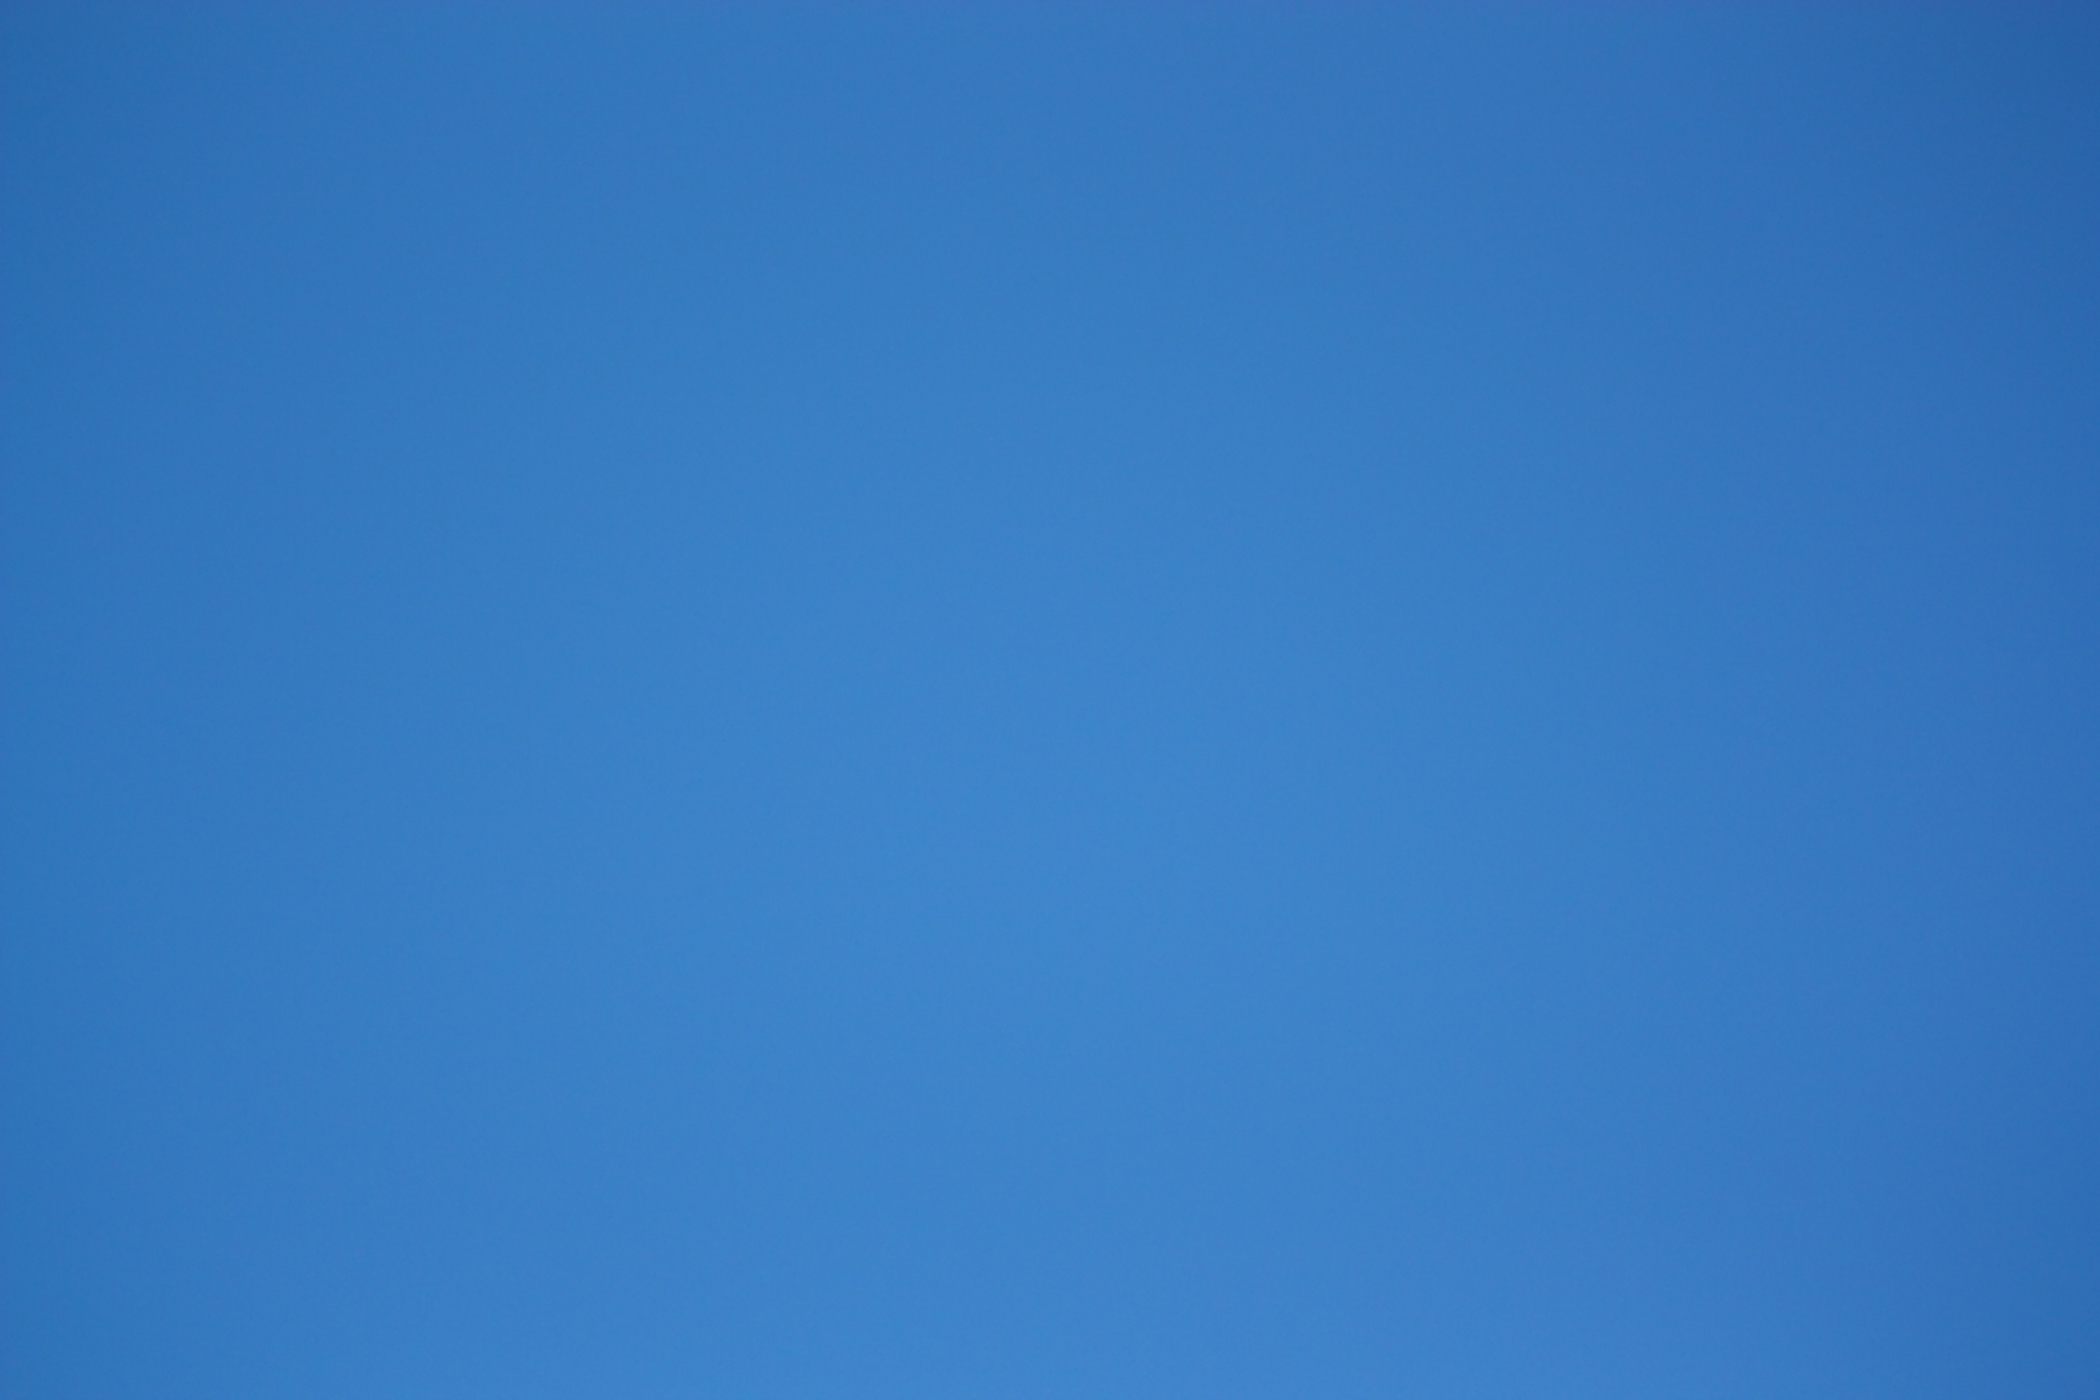 Plain blue wallpaper wallpapersafari for Plain blue wallpaper